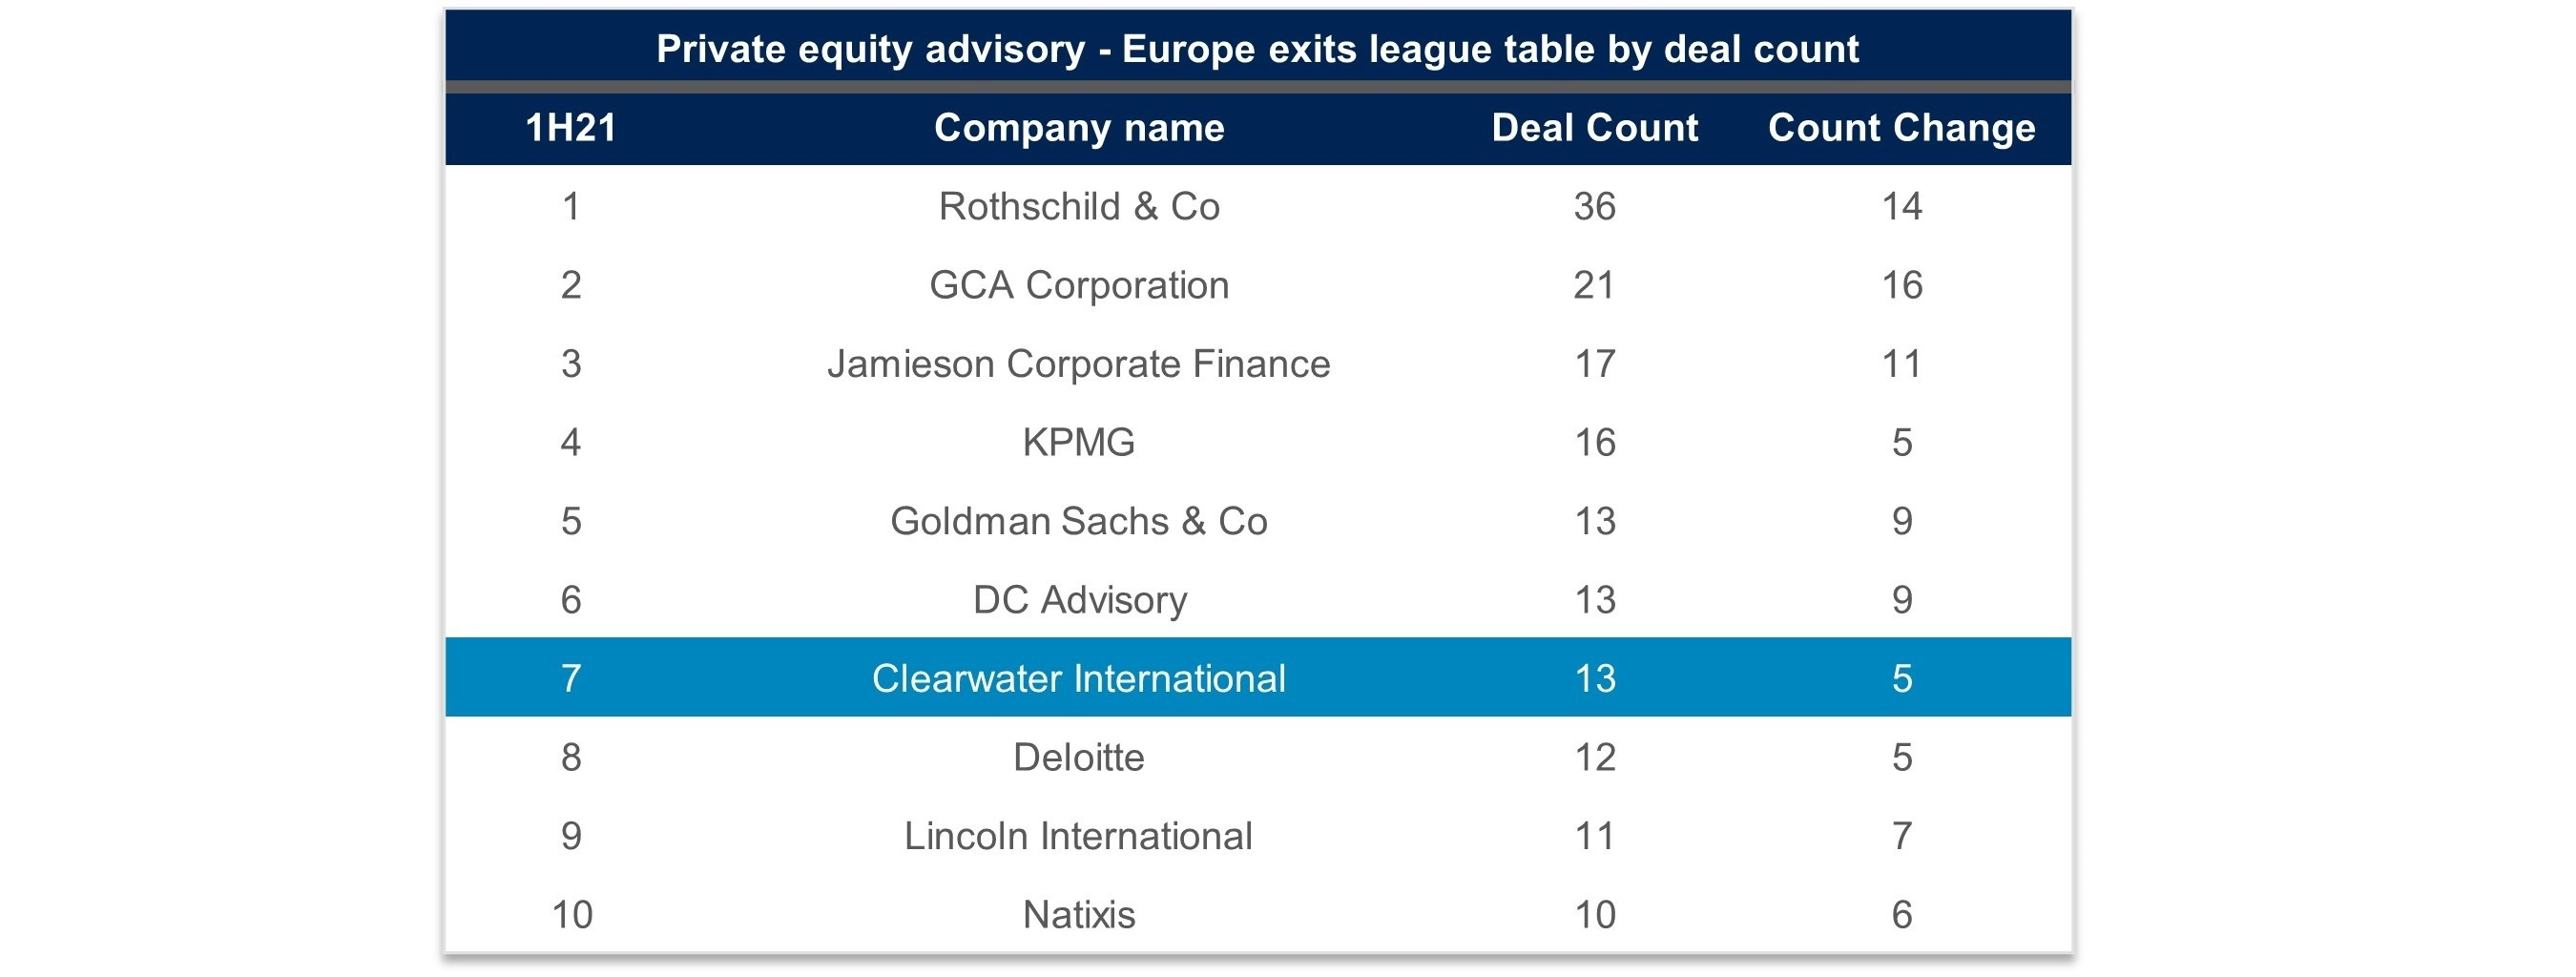 PE europe exits 1 H21 table